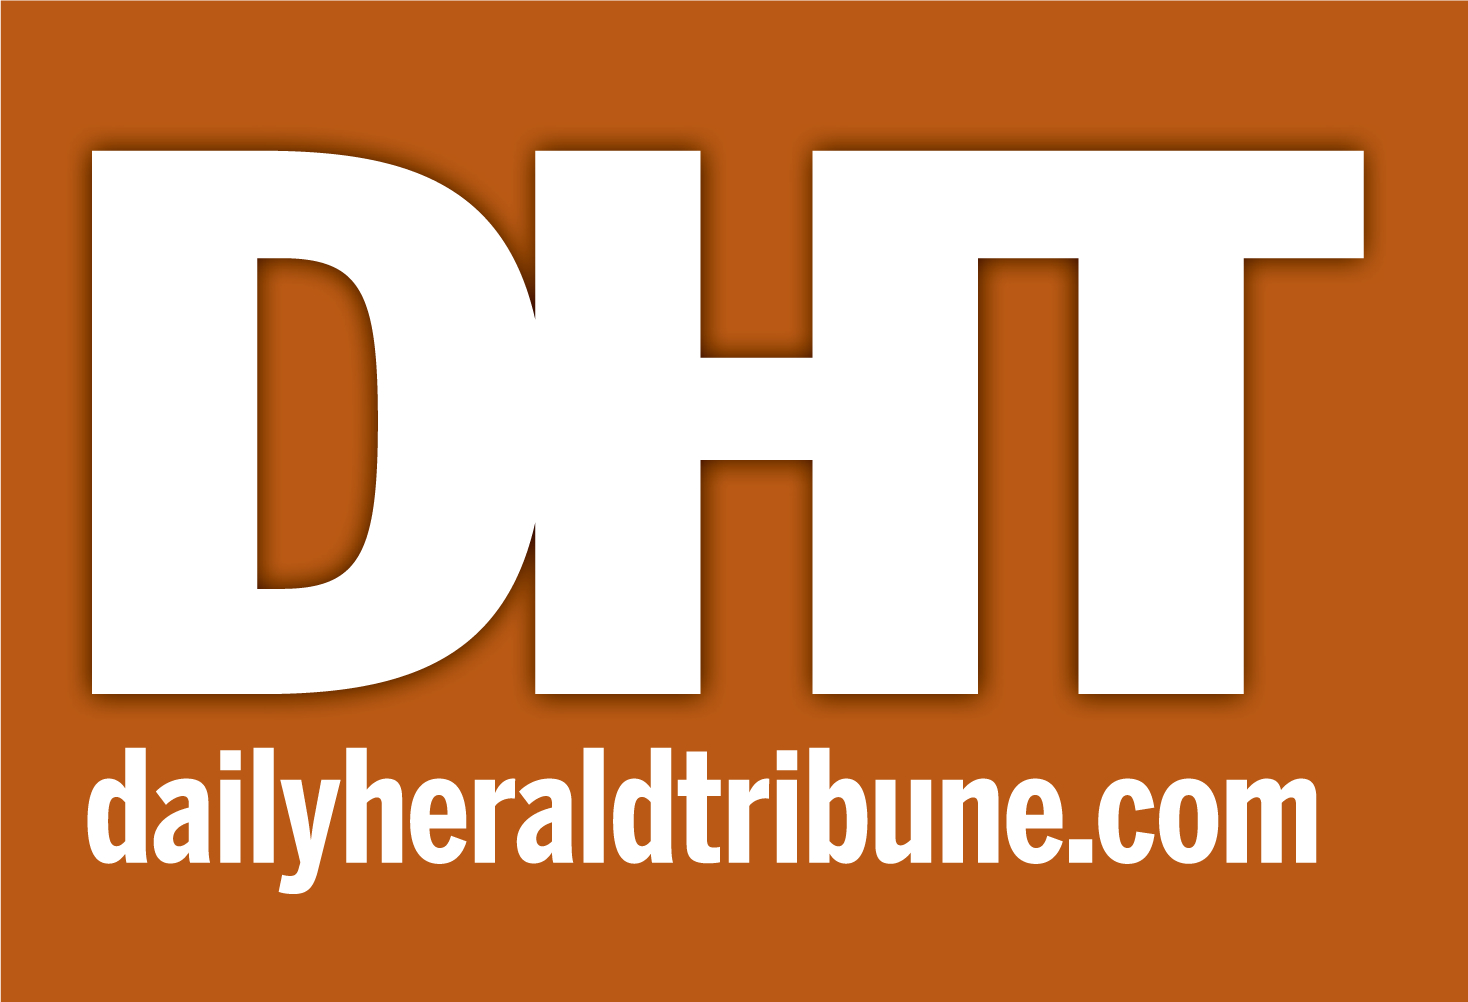 Grande Prairie Daily Herald Tribune Marketplace